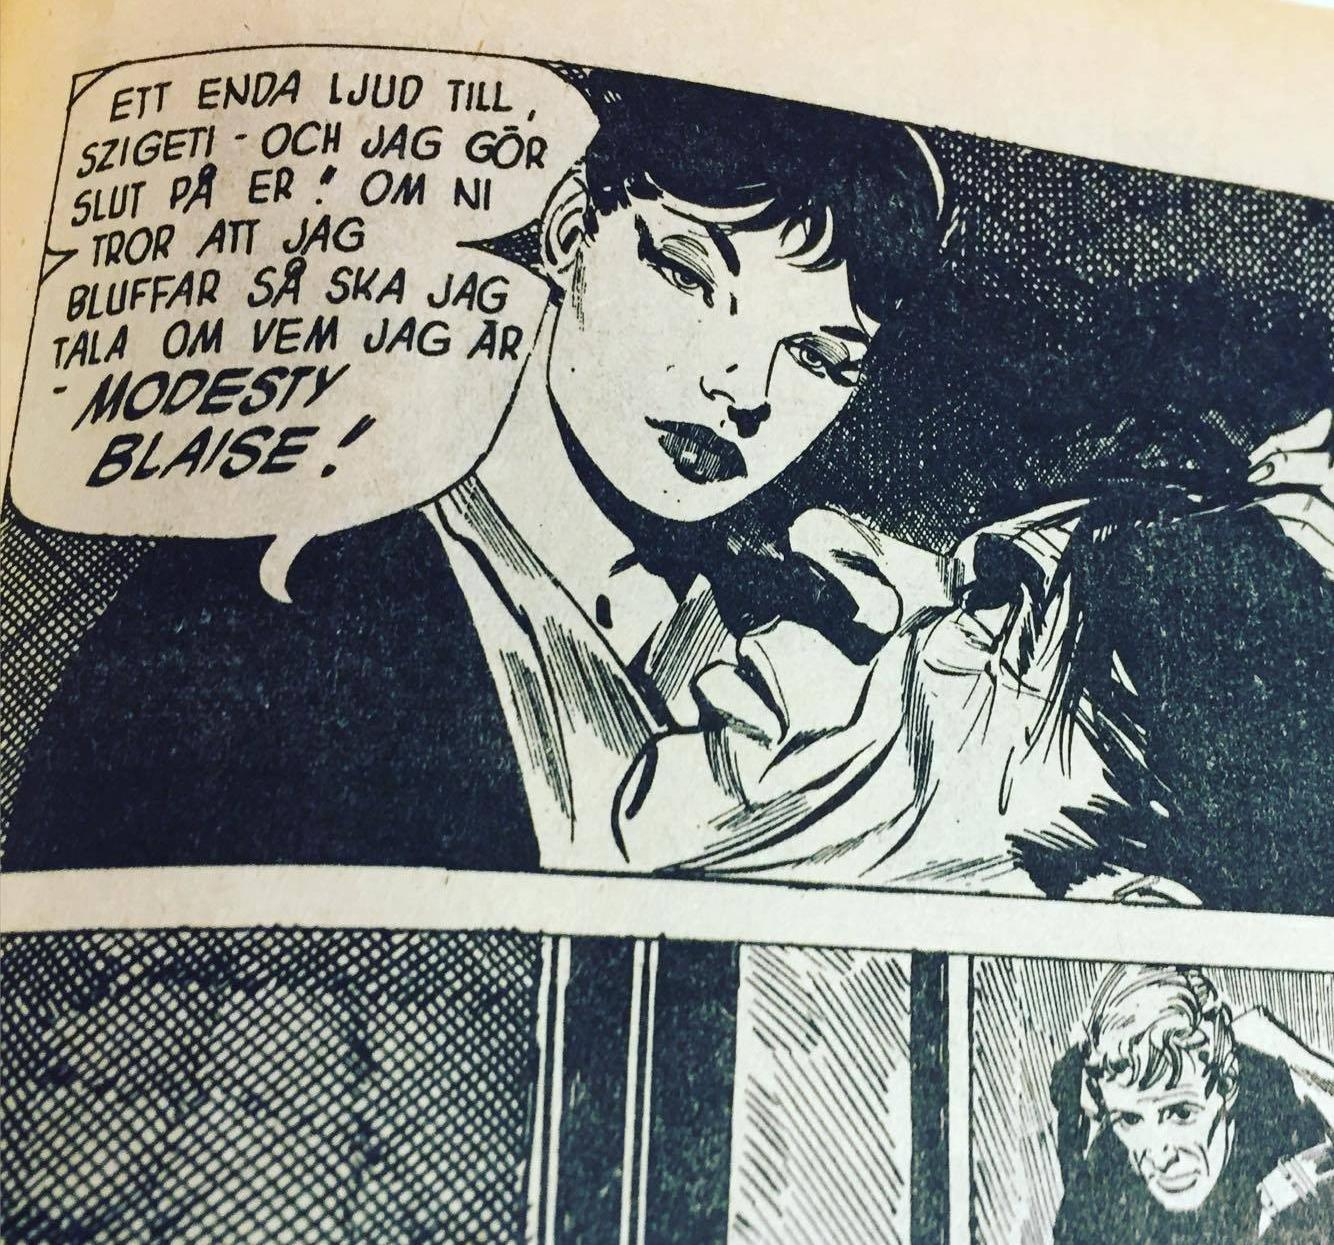 Från Agent Modesty Blaise. Solna : Semic press, 1967-1969